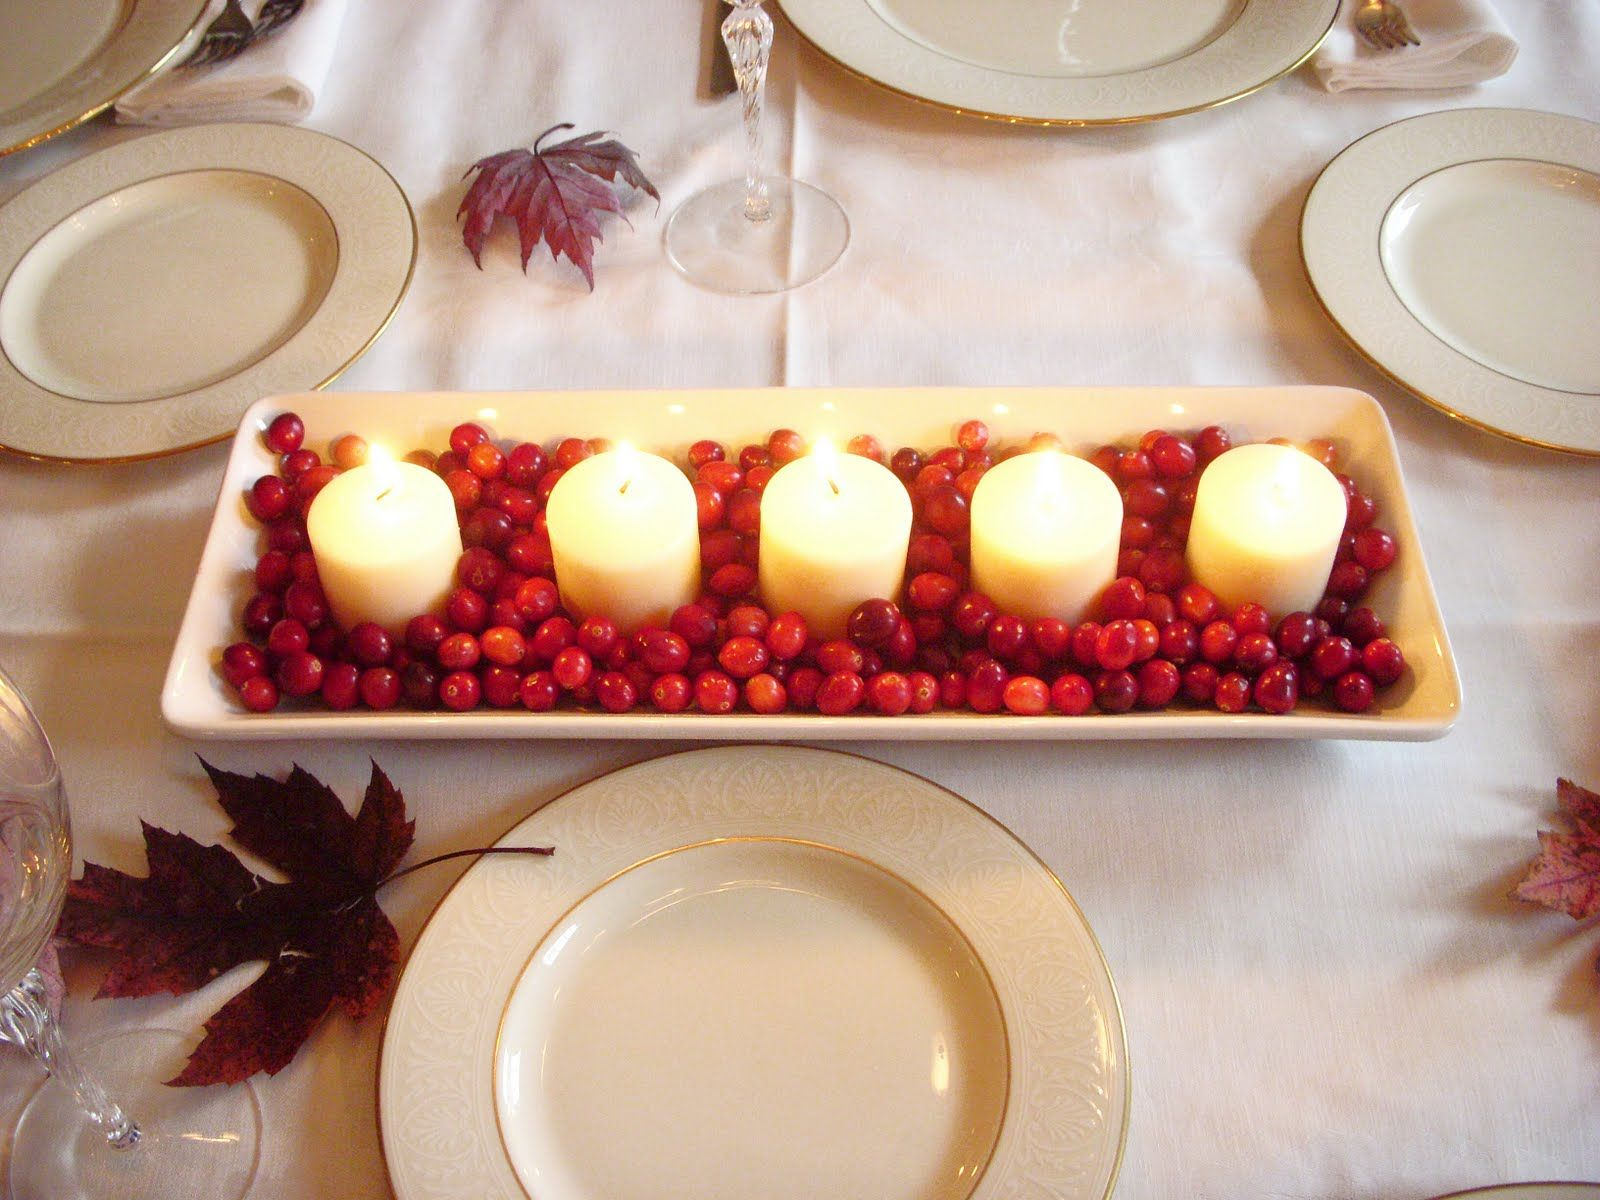 5 Candle Decoration Combination With Some Cranberry For Christmas Centerpiece White Dinner Tablecloth Furniture Essential Best Of